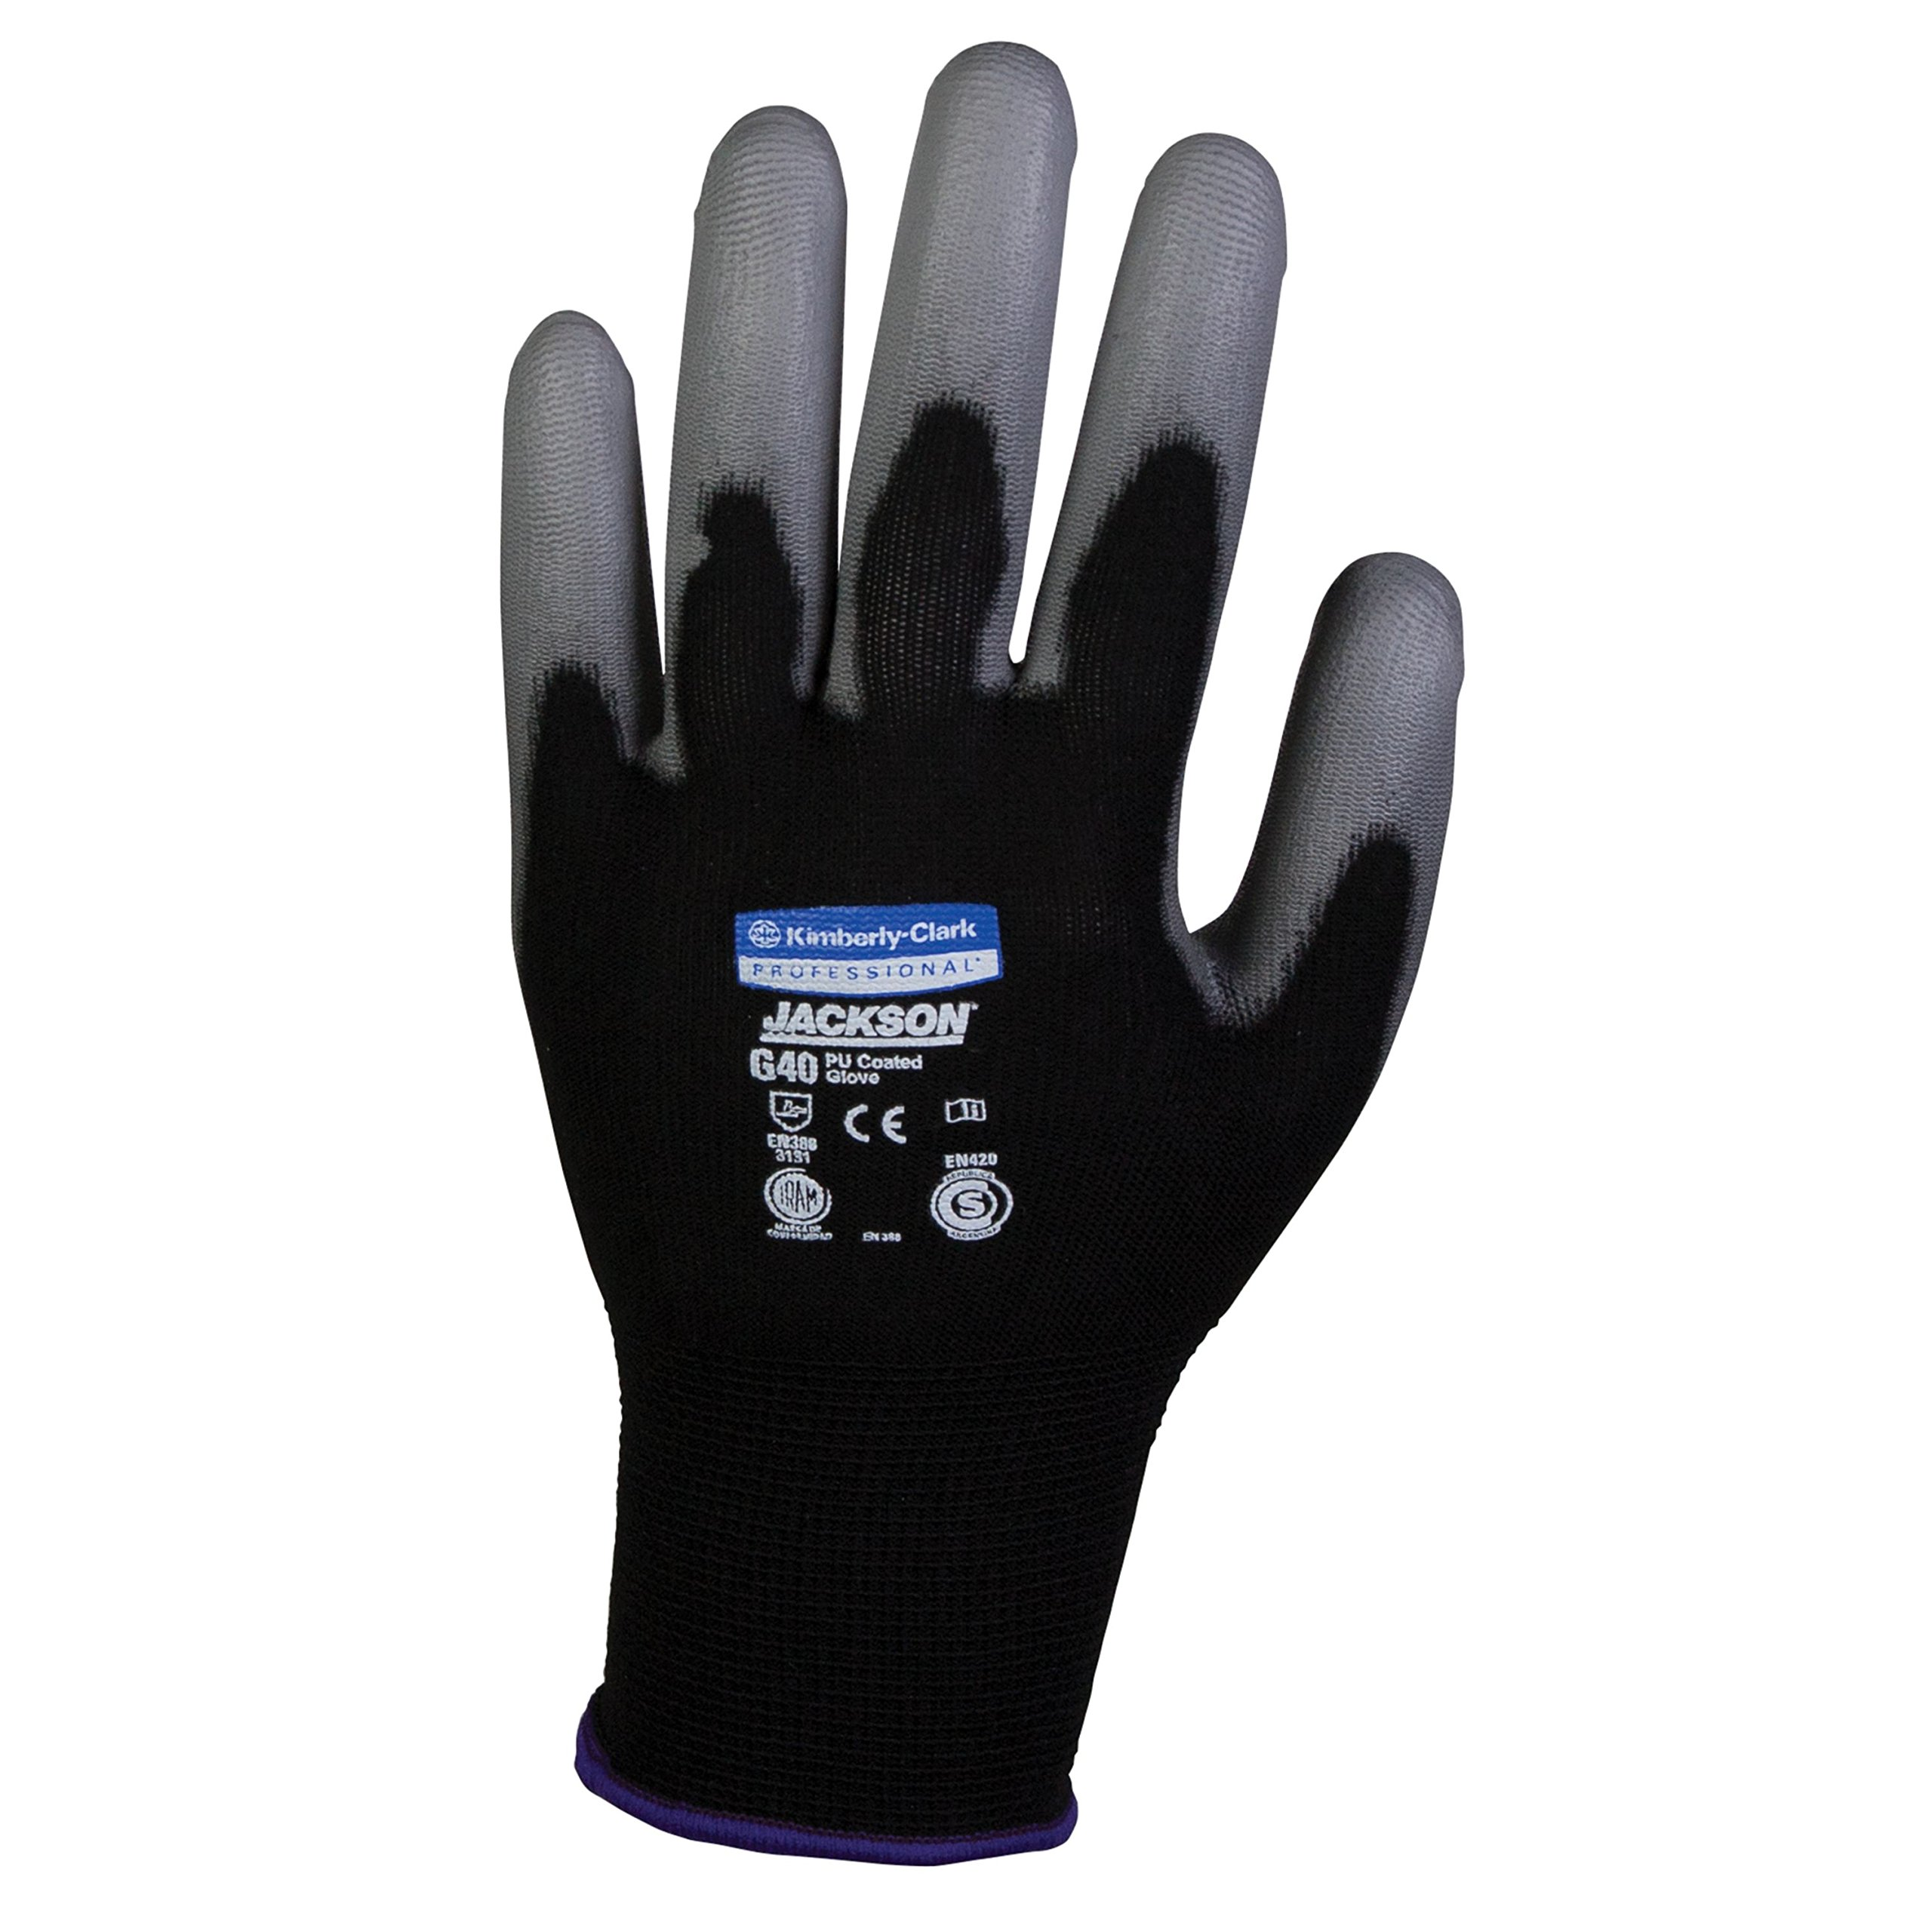 JACKSON SAFETY 13838 G40 Polyurethane Coated Gloves, High Dexterity, black, 15.000'' Height, 12.000'' Wide, 2.500'' Length, Polyurethane, Medium/ 8 (Pack of 60)